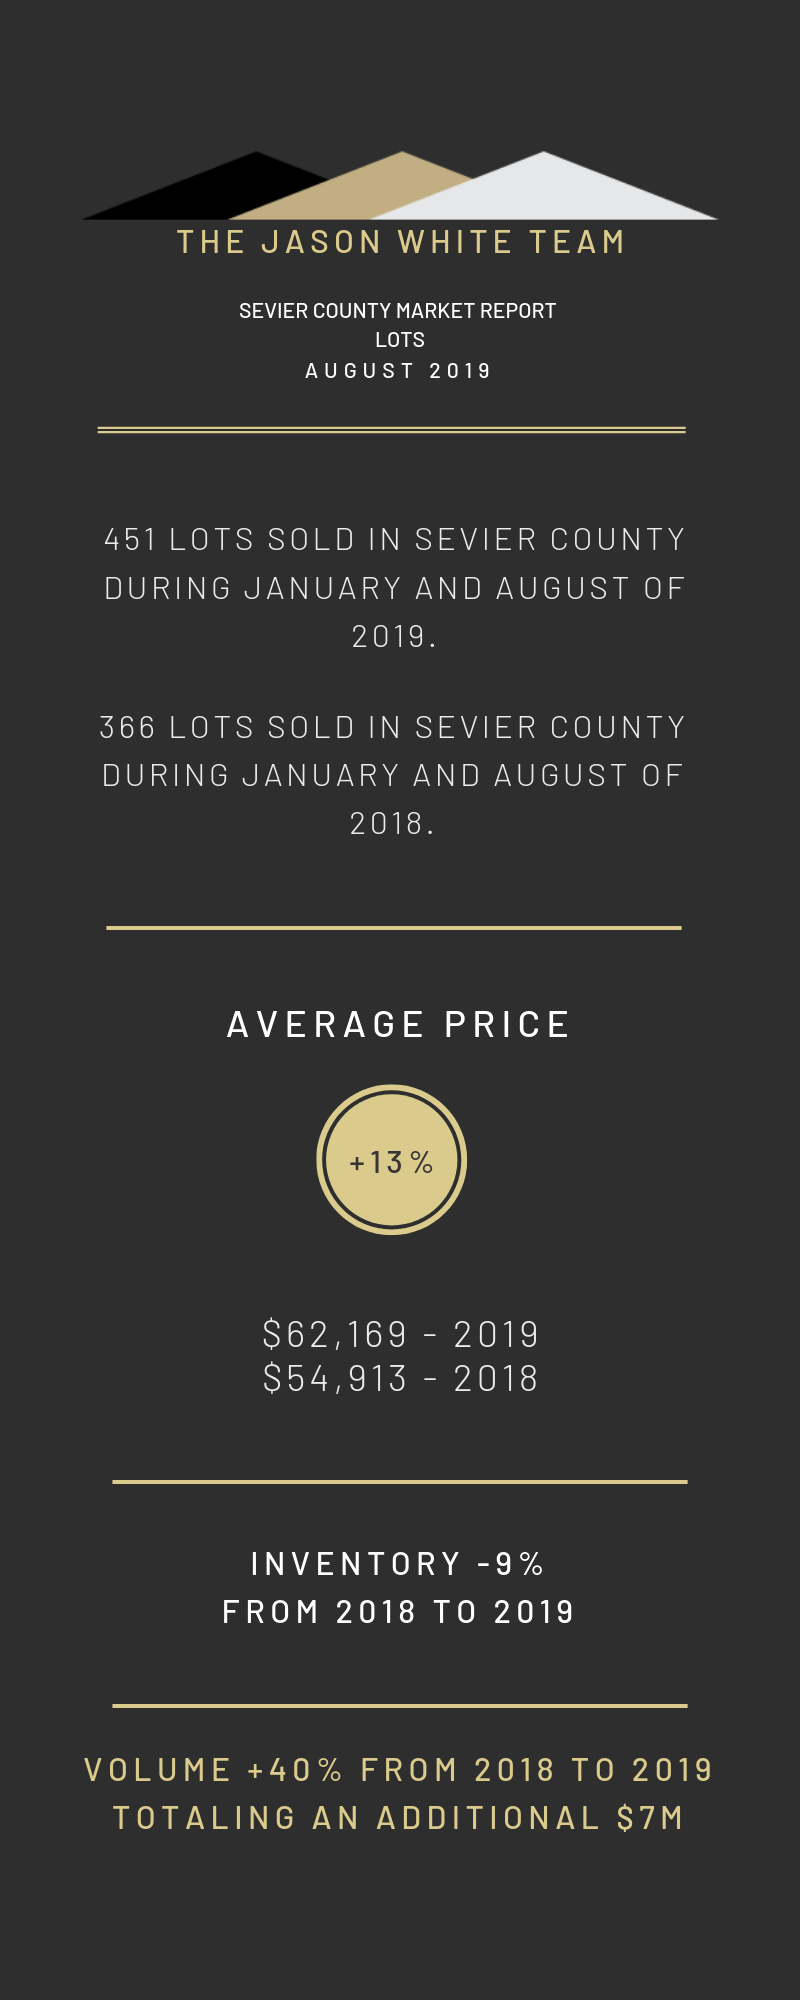 August 2019 Market Report for Sevier County, TN - Land